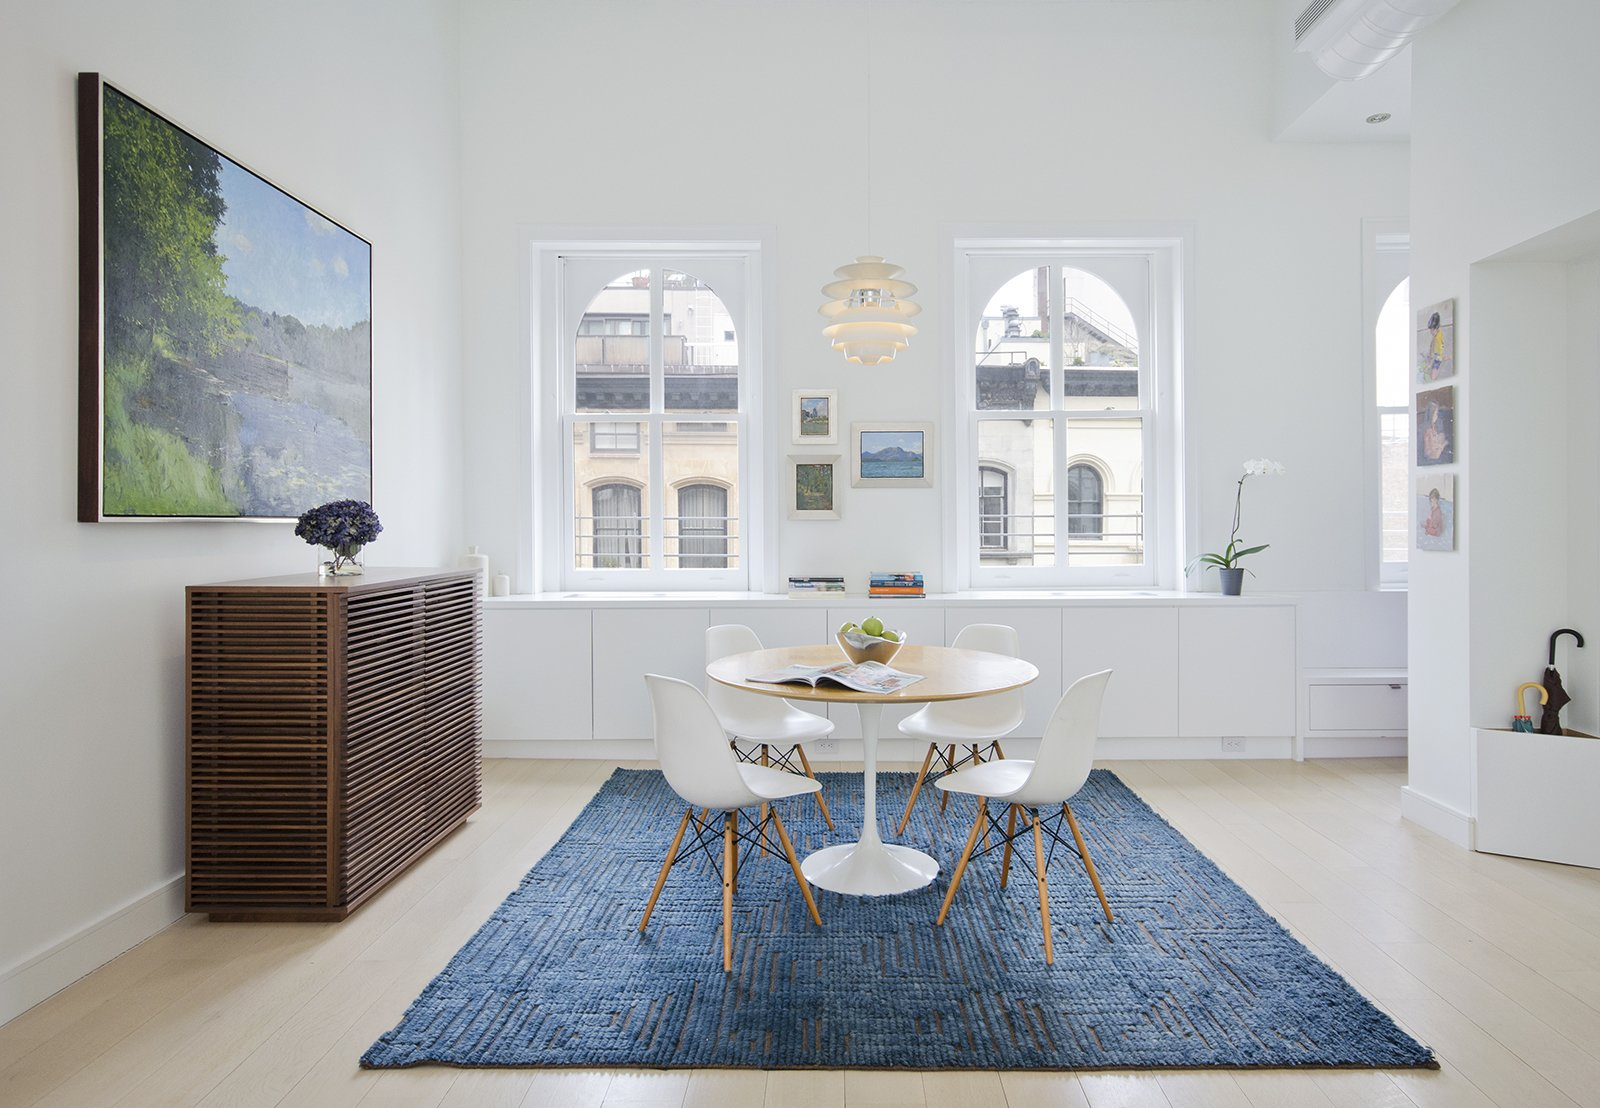 In a renovated Tribeca loft, Eames shell chairs surround a Saarinen Tulip table from Knoll. The Line console is from Design Within Reach and the pendant light is Louis Poulsen's Snowball. While architect Matthew Miller of New York firm StudioLAB gutted the space, some of the original details—like the windows—remain. The rug is from ABC Home. Tagged: Dining Room, Chair, Pendant Lighting, Table, and Light Hardwood Floor.  Photo 3 of 9 in The Complete Dwell Guide to Eames Shellspotting